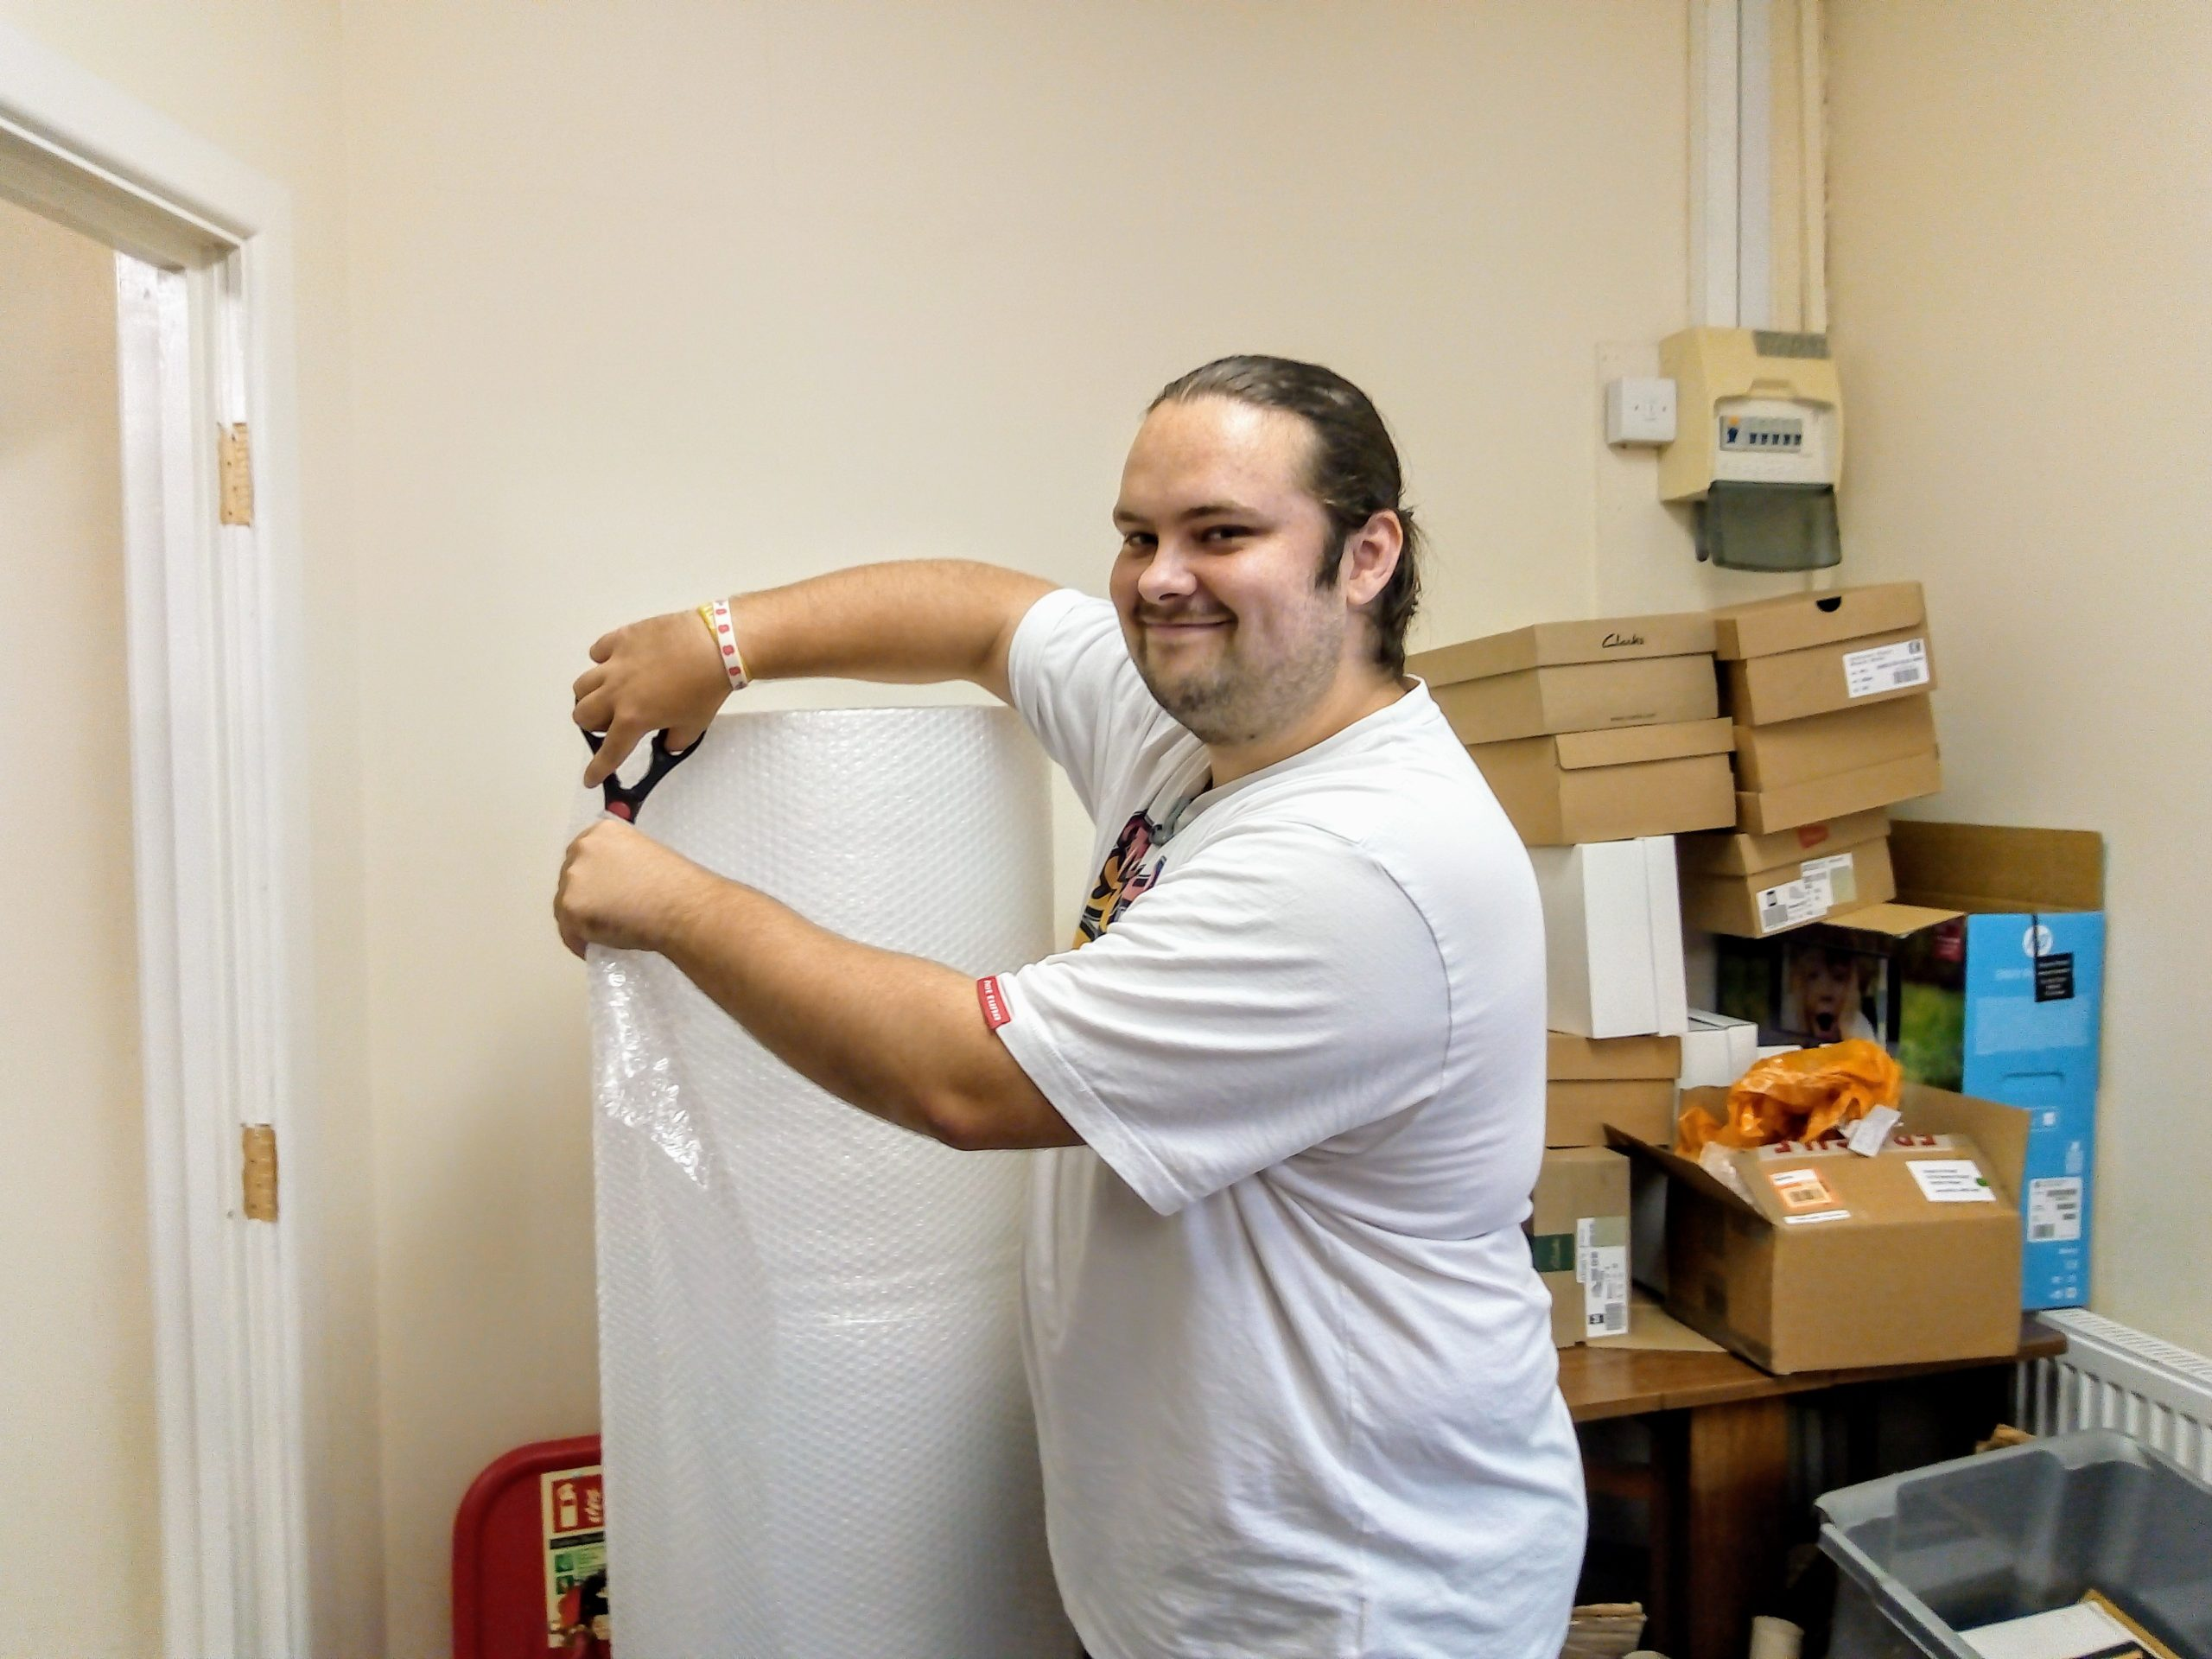 Man working with bubble wrap